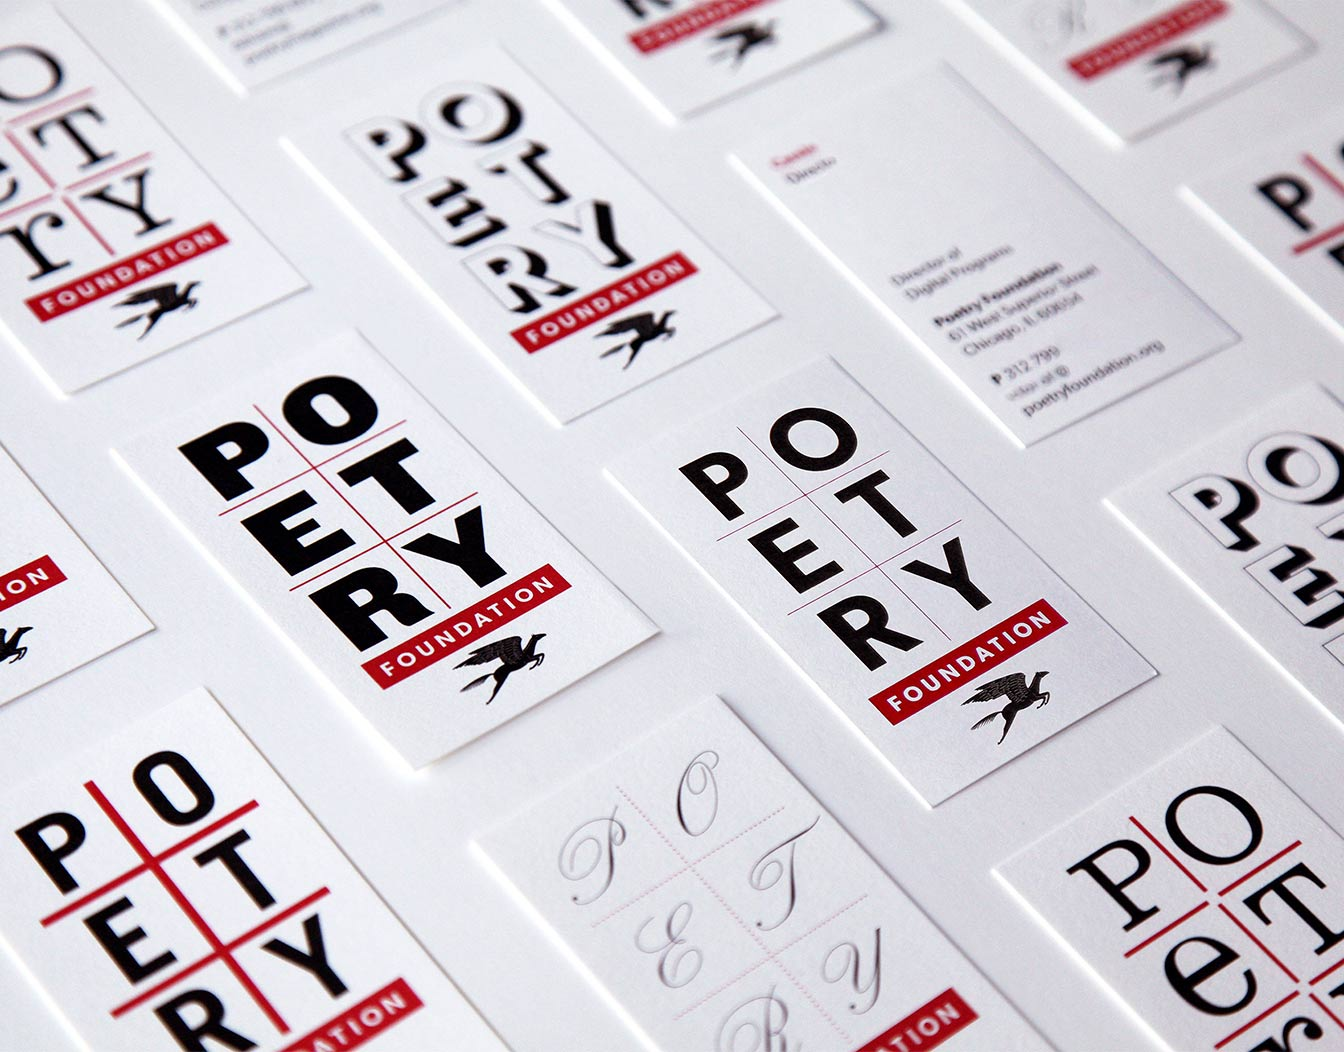 poetry event cards laid out in pattern